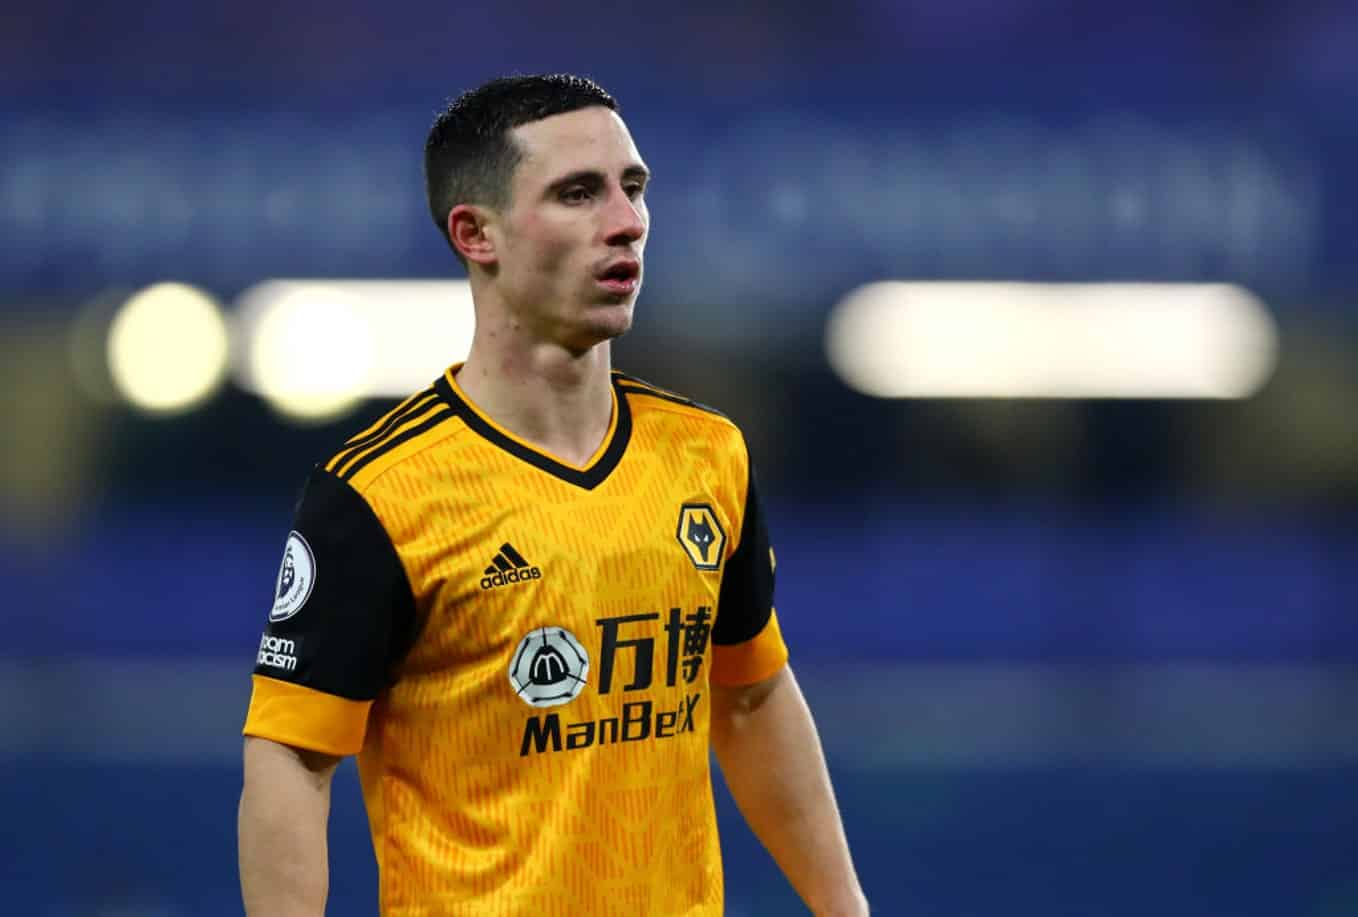 LONDON, ENGLAND - JANUARY 27: Daniel Podence of Wolverhampton Wanderers during the Premier League match between Chelsea and Wolverhampton Wanderers at Stamford Bridge on January 27, 2021 in London, England. Sporting stadiums around the UK remain under strict restrictions due to the Coronavirus Pandemic as Government social distancing laws prohibit fans inside venues resulting in games being played behind closed doors. (Photo by Chloe Knott - Danehouse/Getty Images)